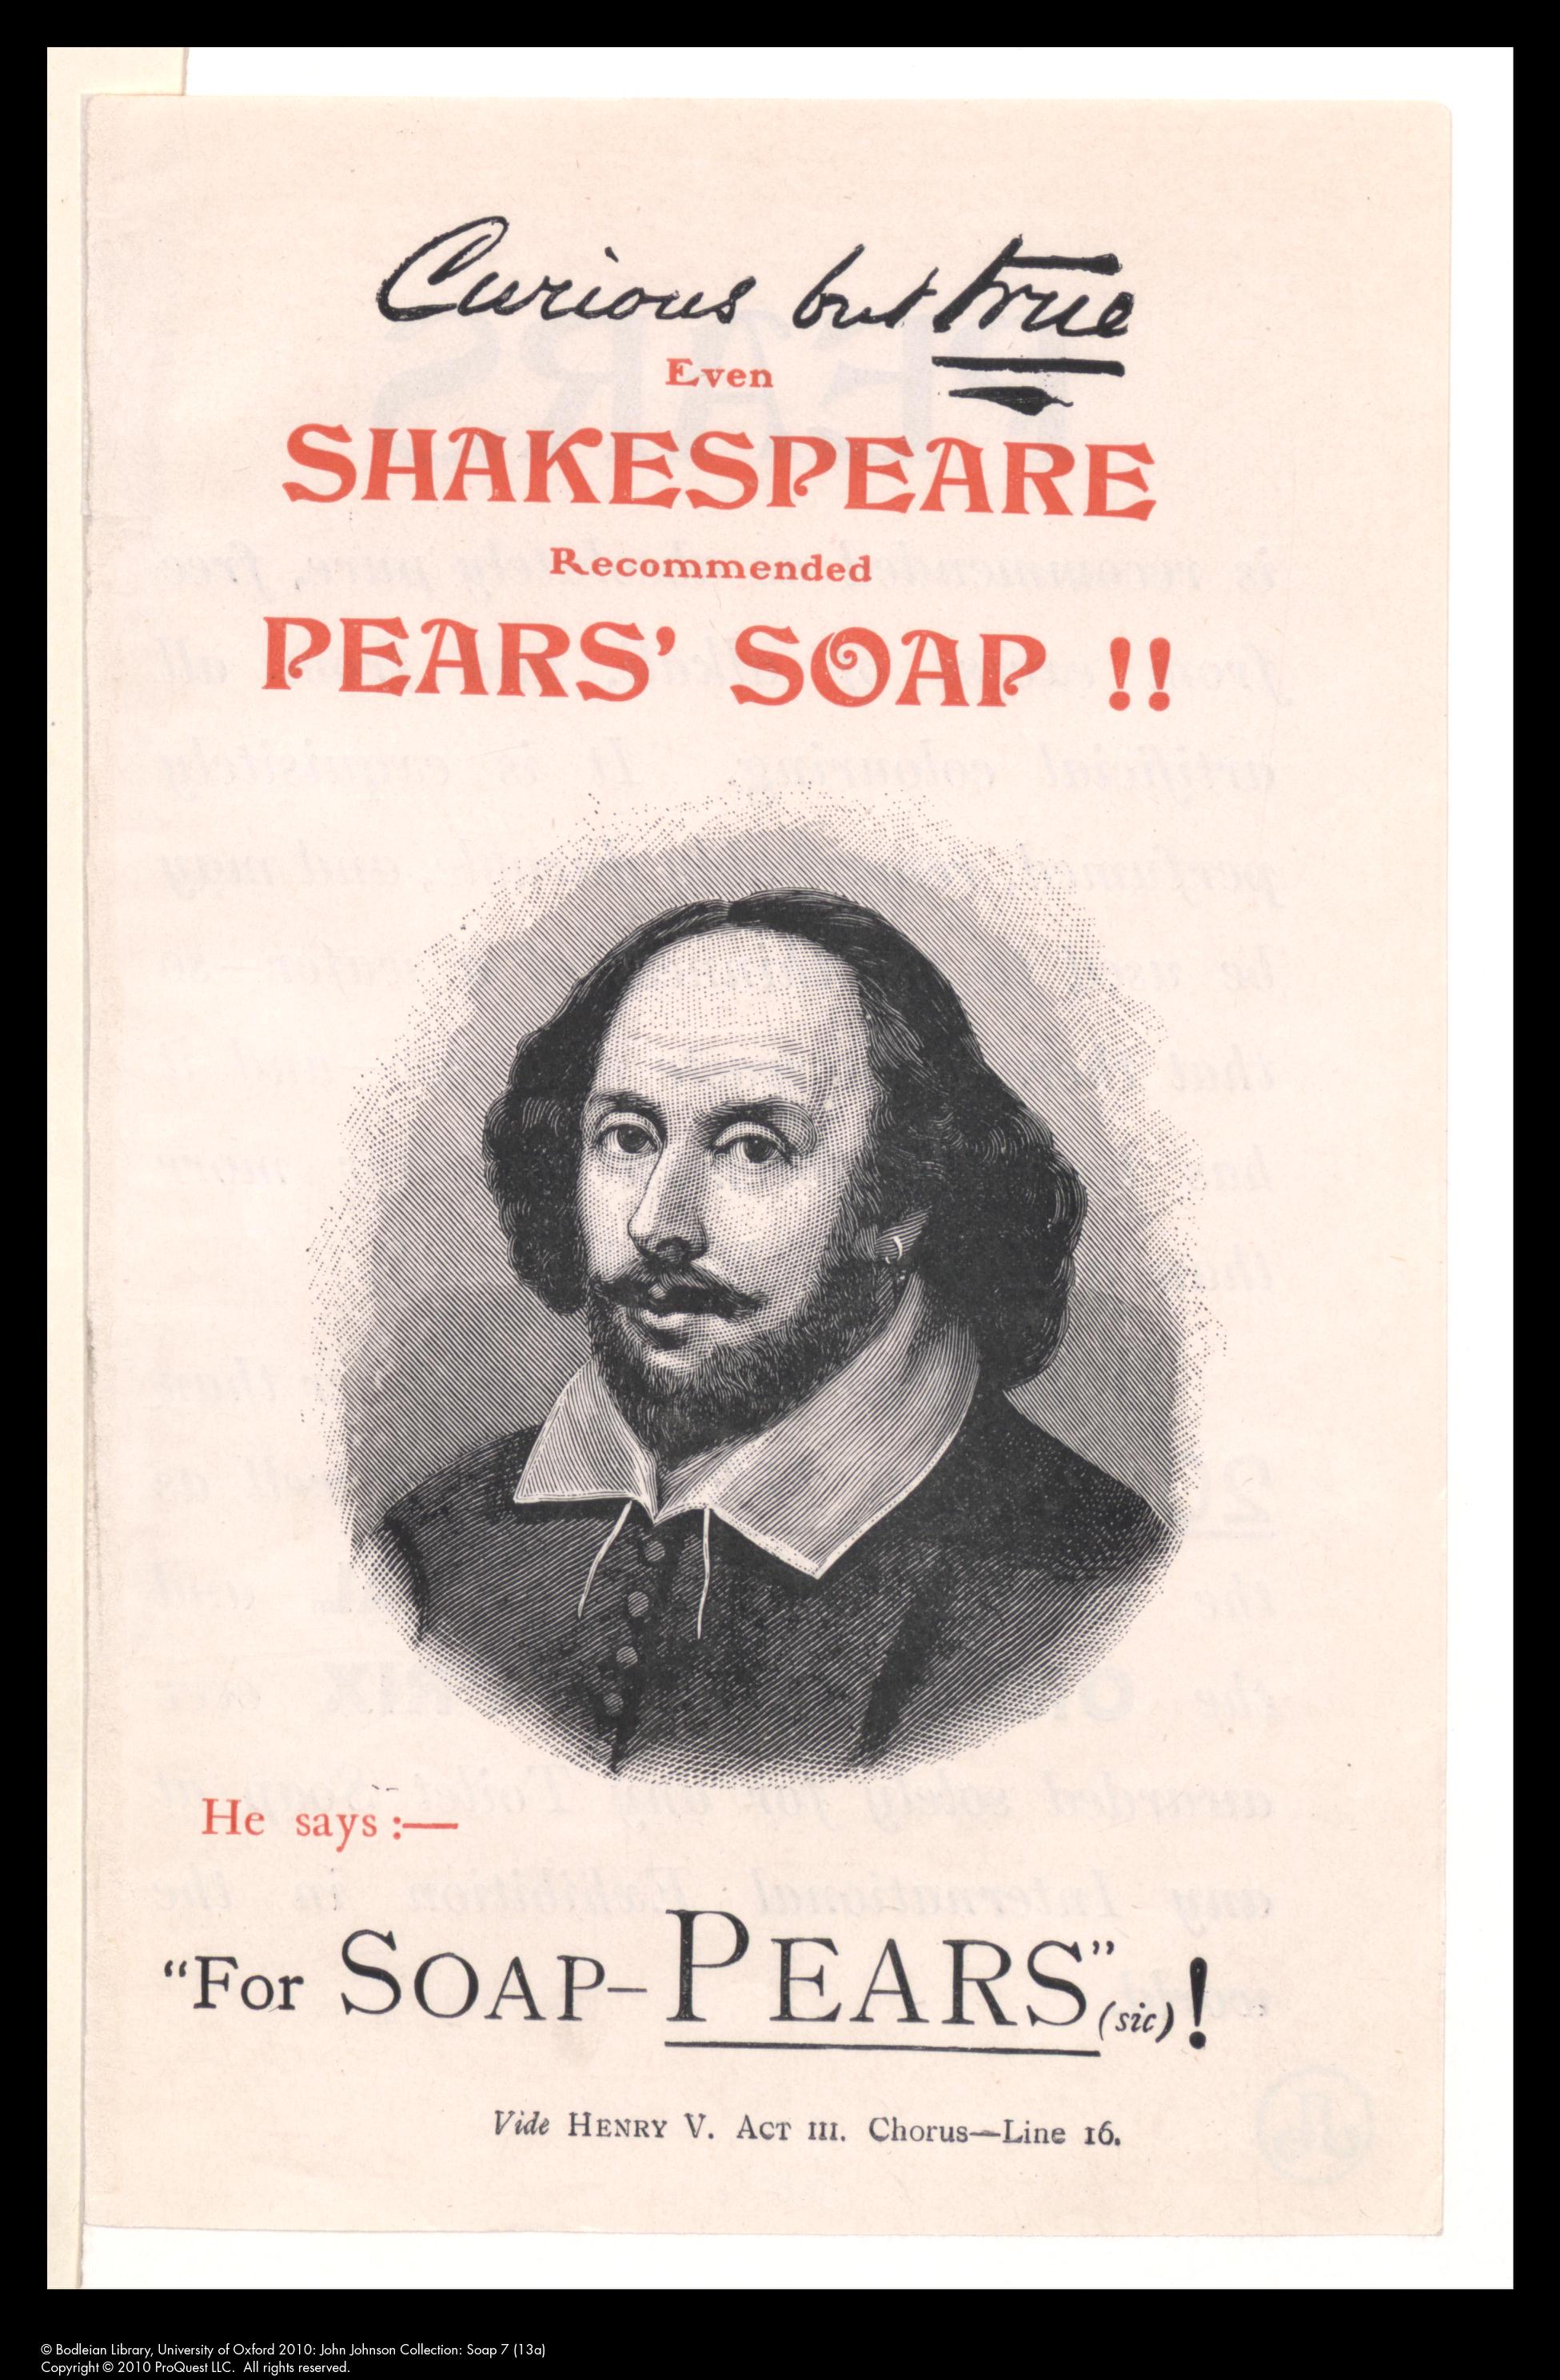 Pears soap ad showing Shakespeare